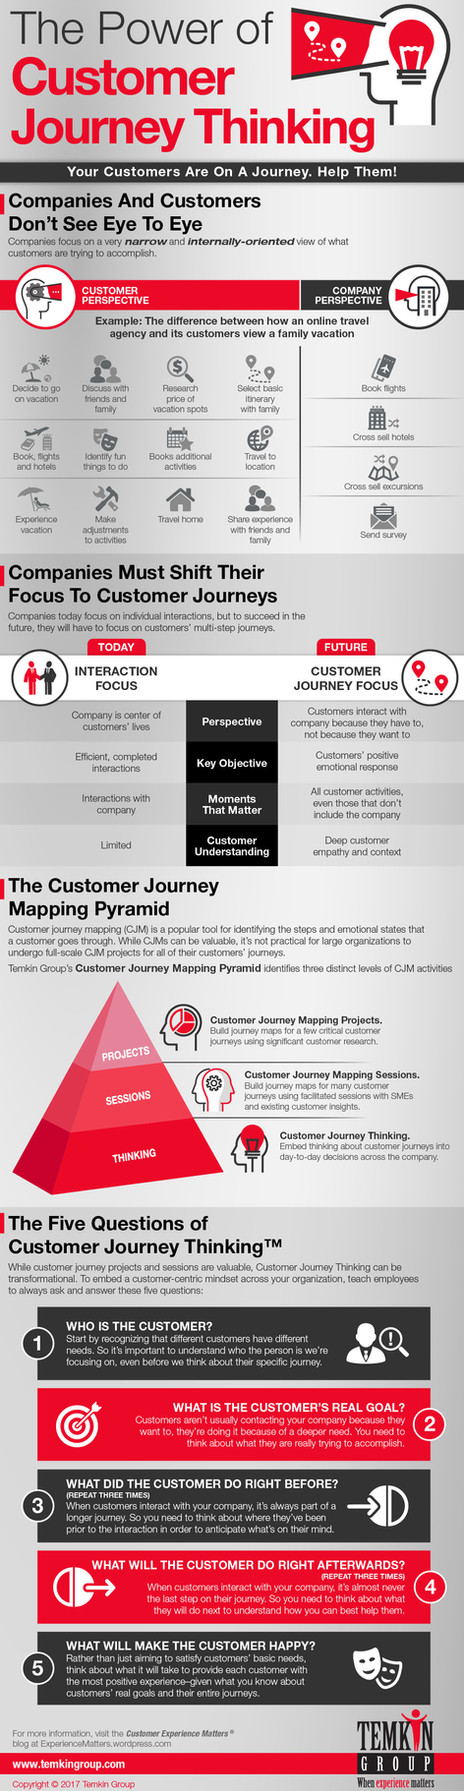 The Power of Customer Journey Thinking